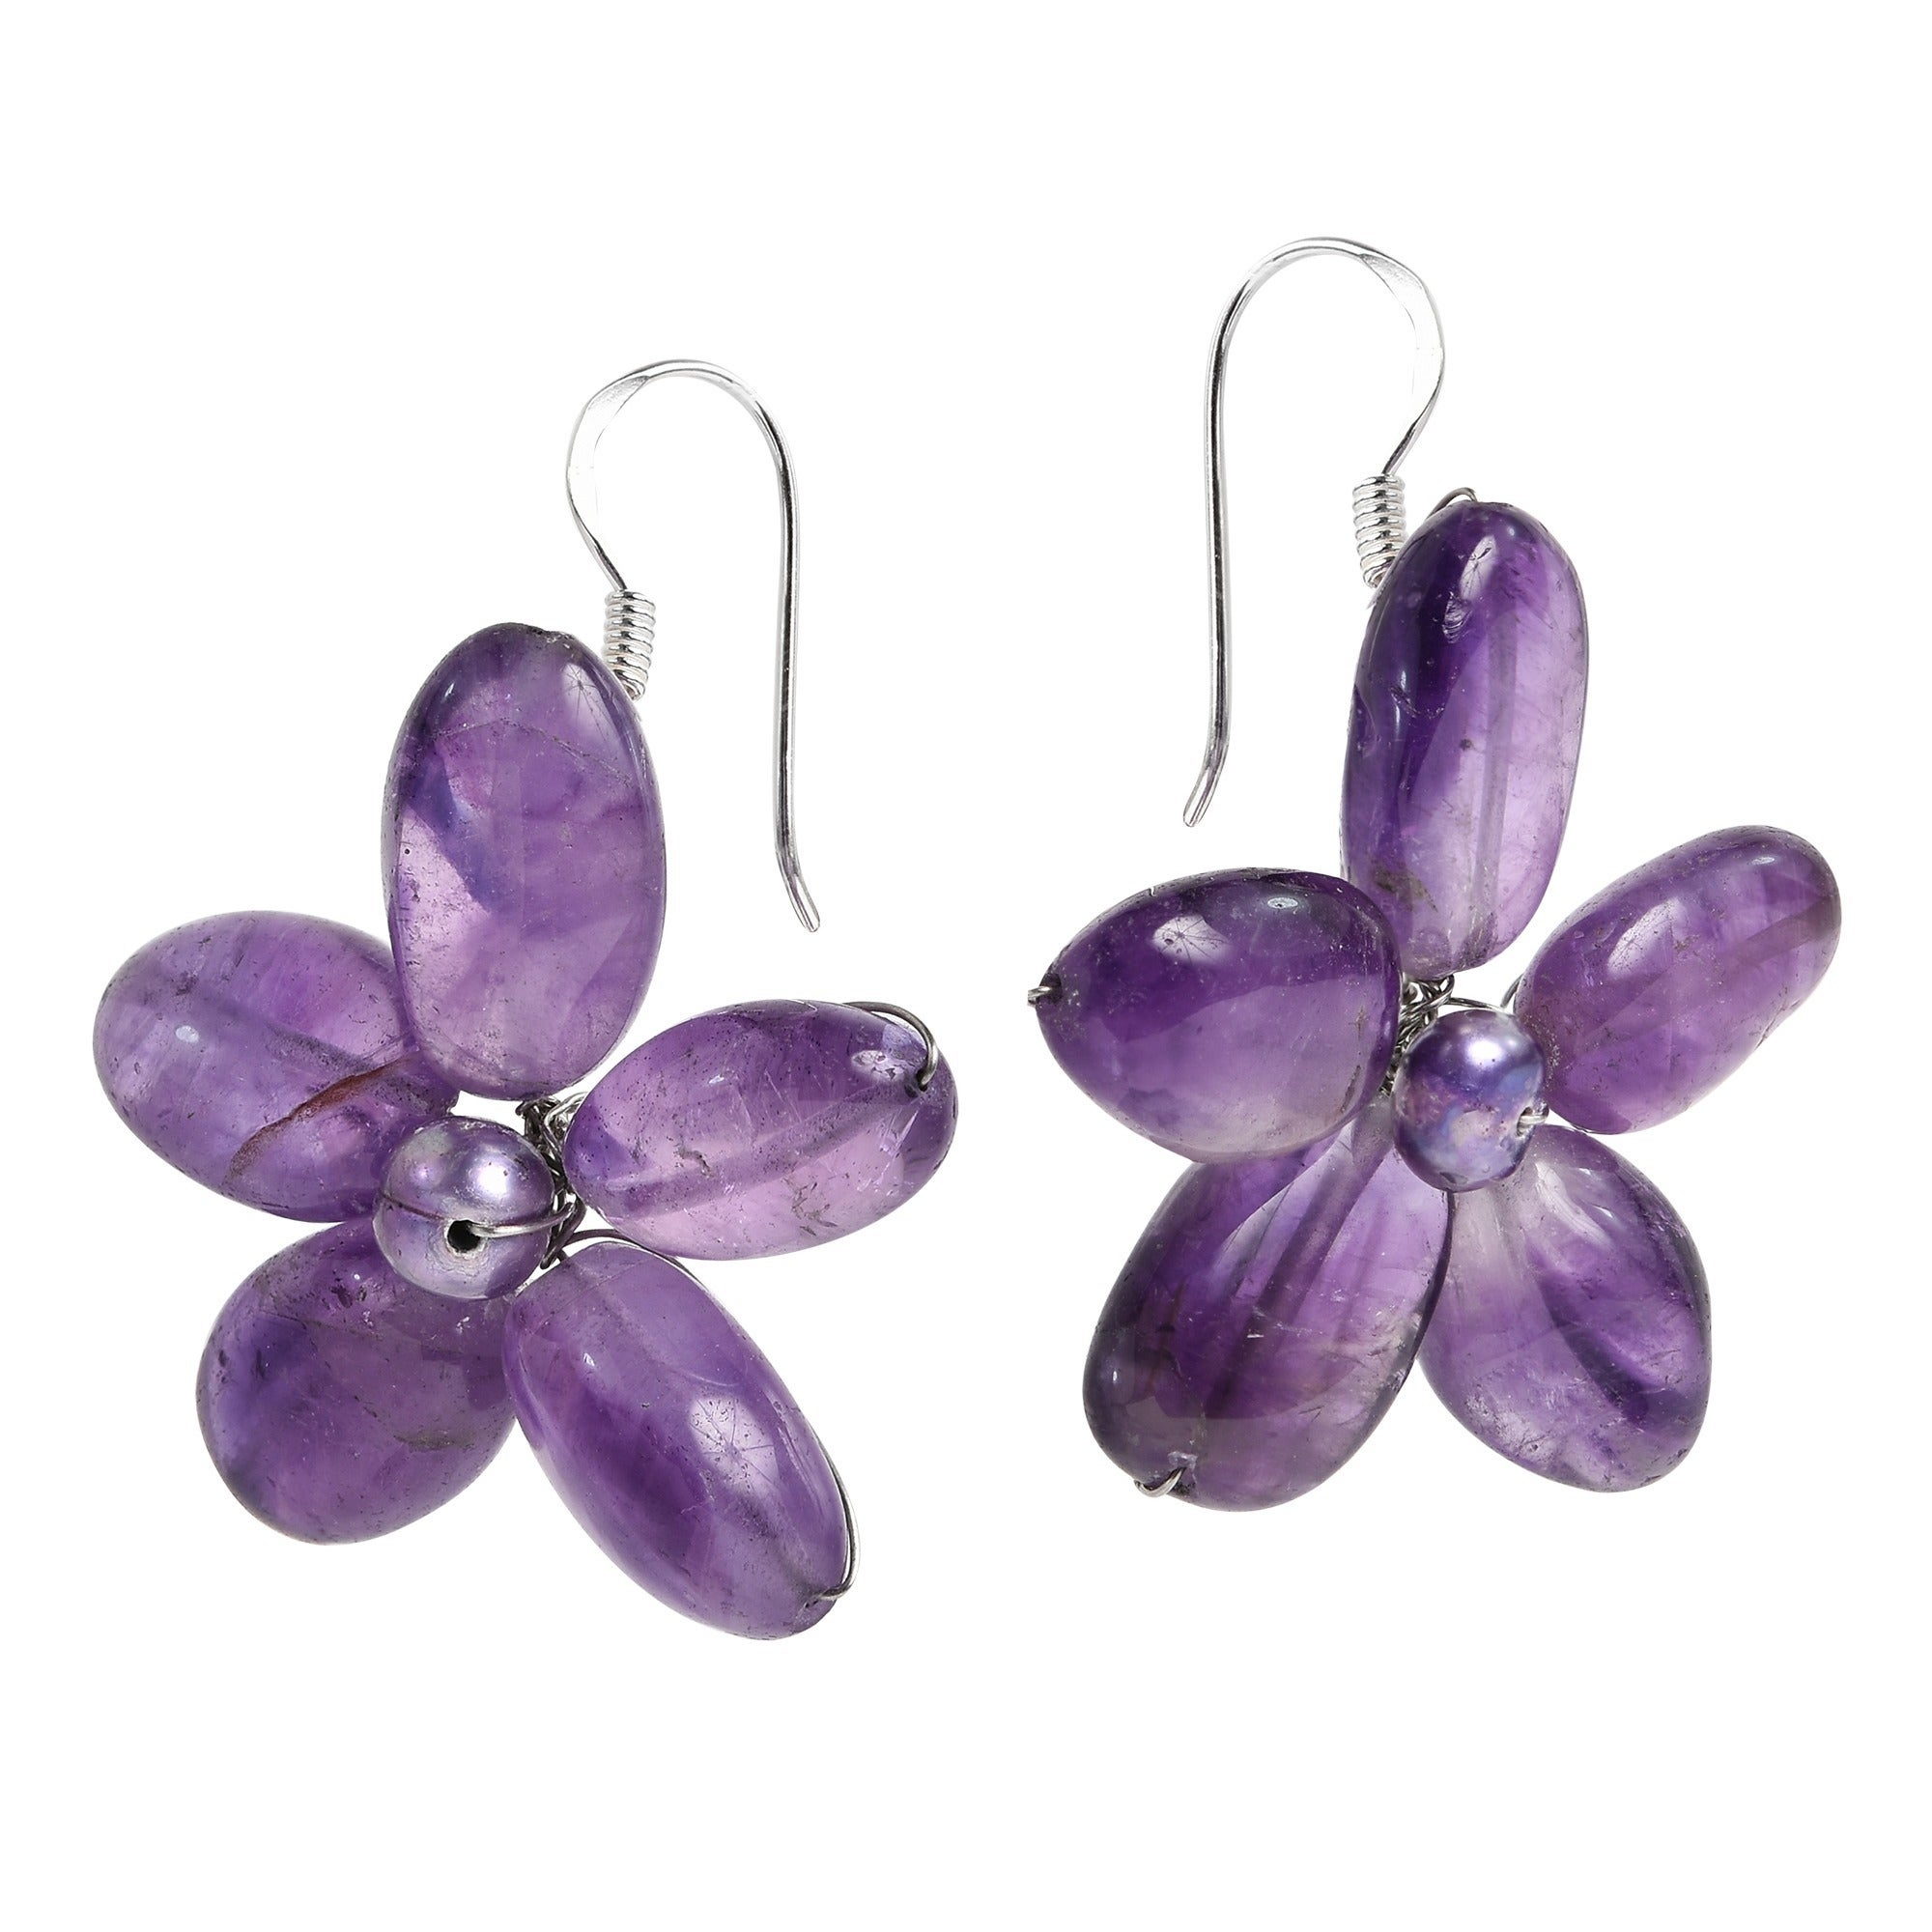 img online exclusive mini purple shop earrings flower madeline copy mignonne aria gavigan